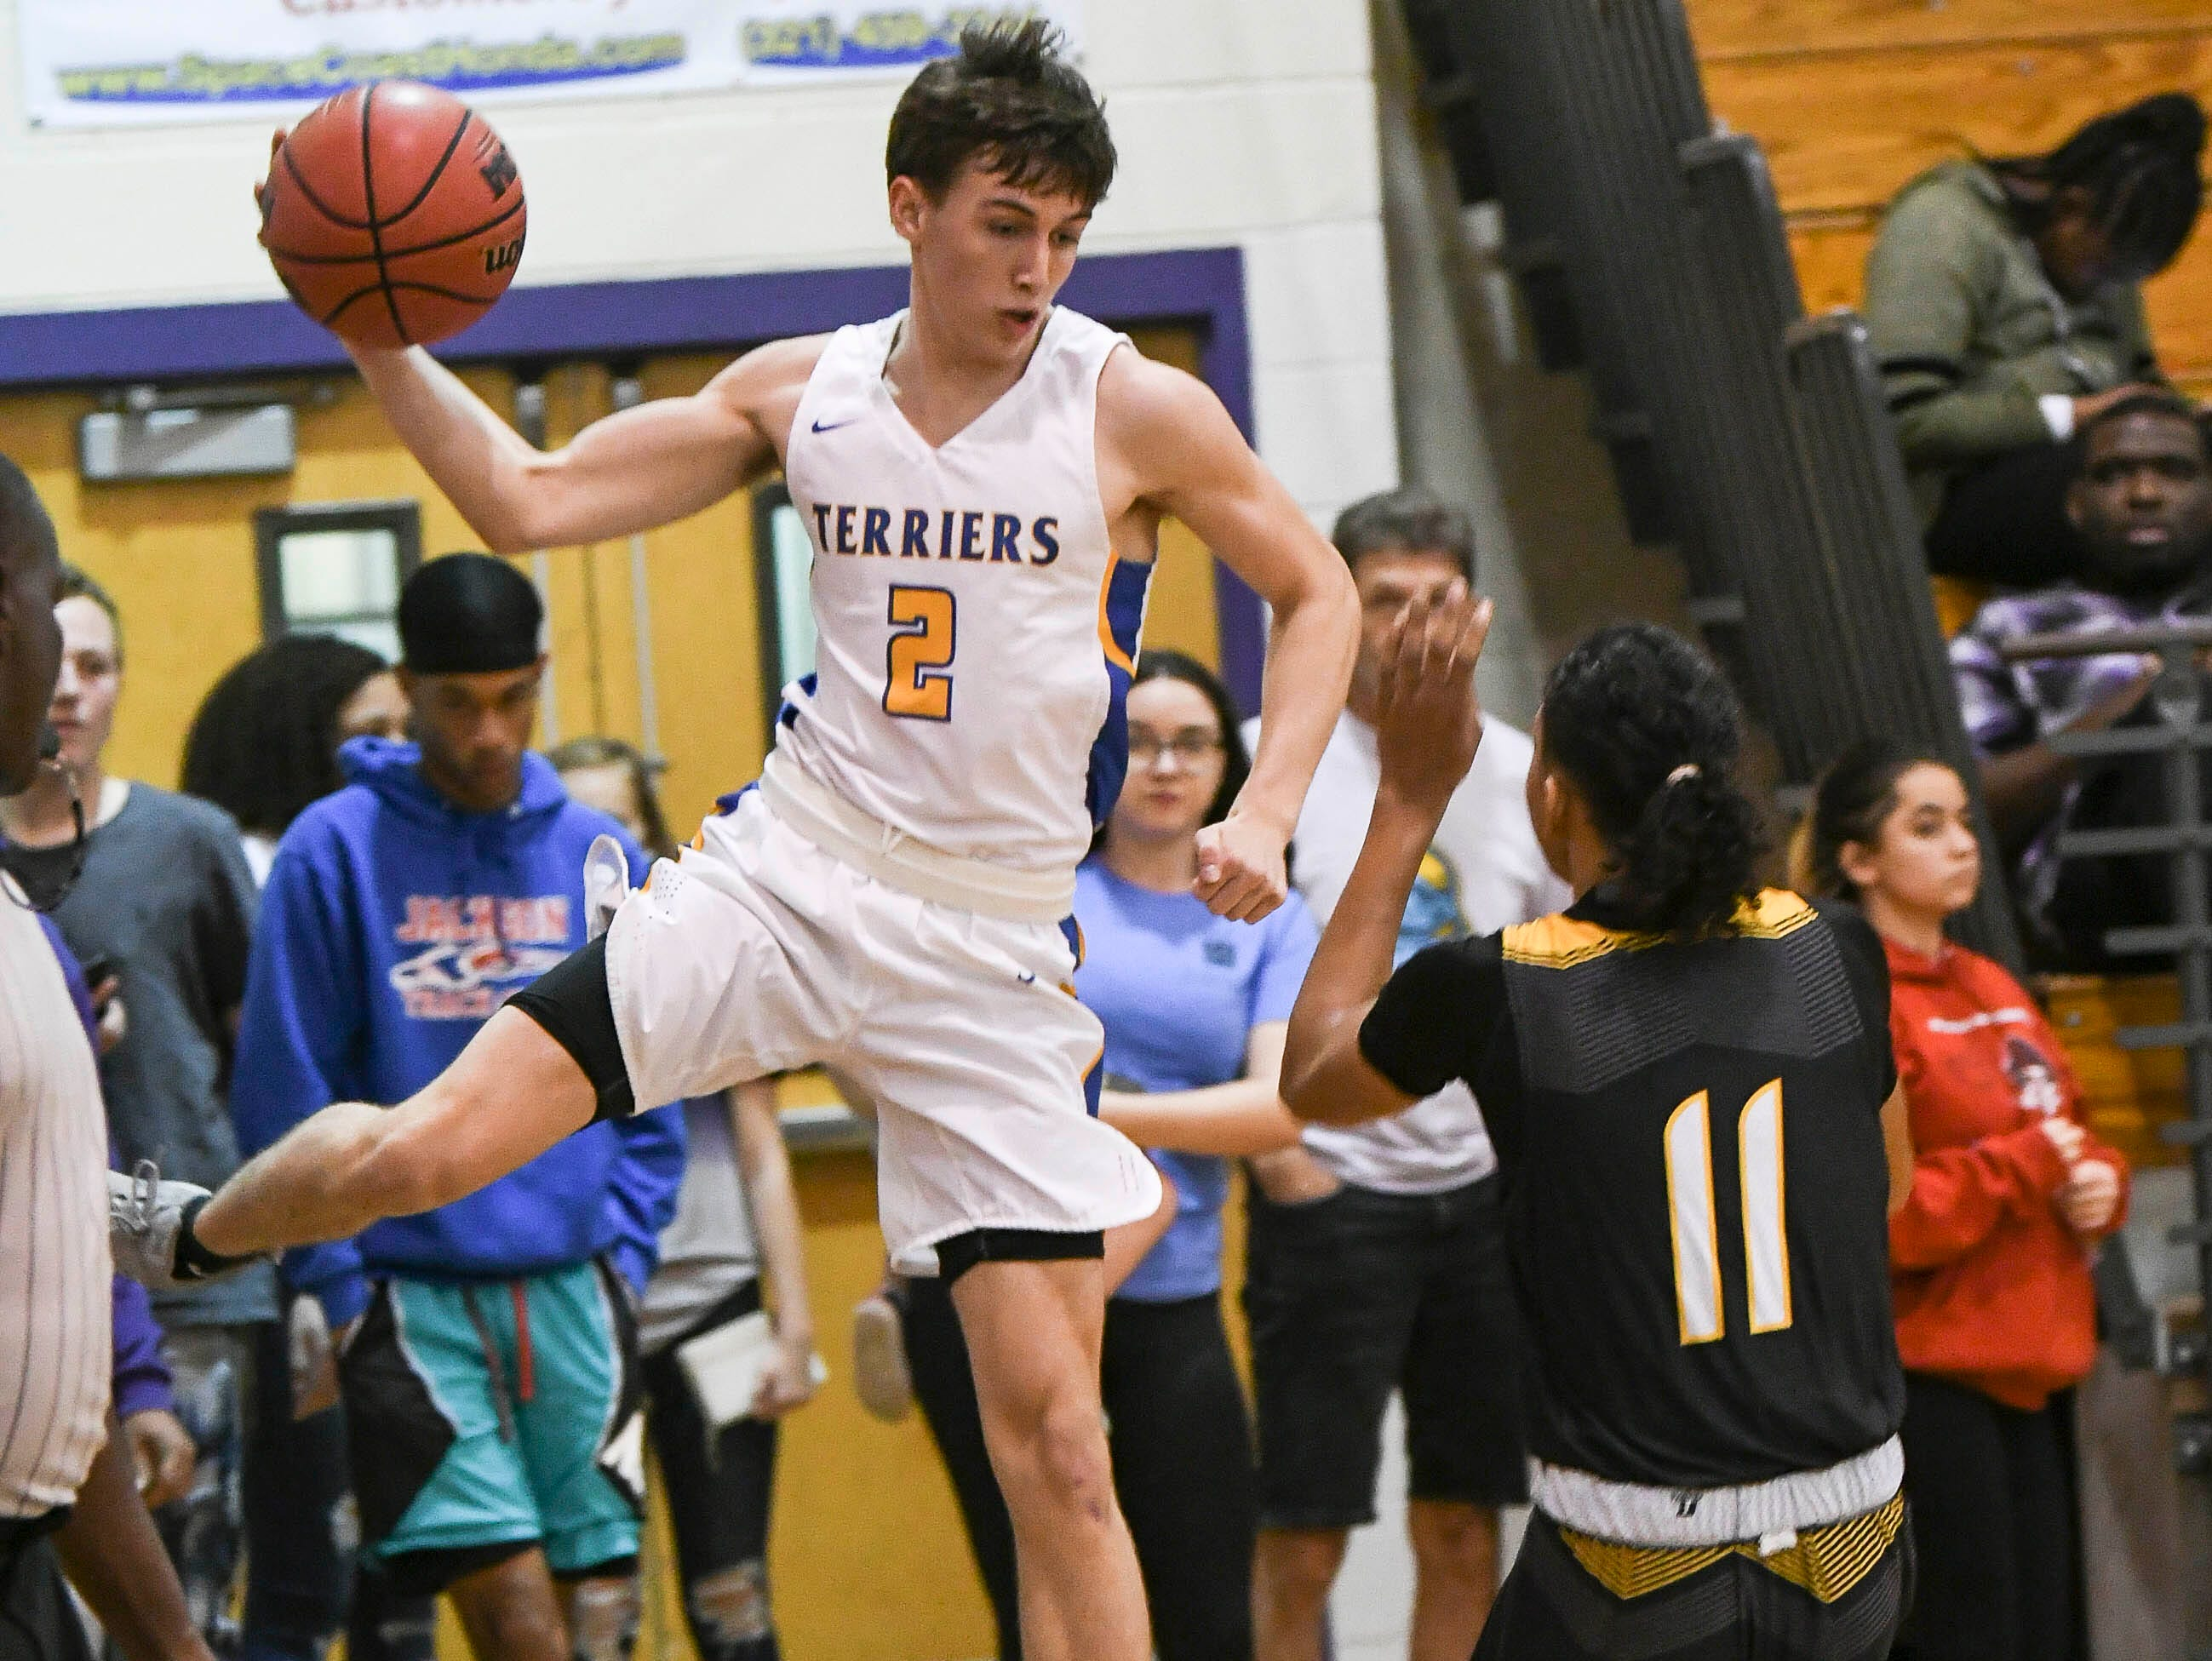 Blaine Reid of Titusville throws the ball out of bounds off EJ Balk of Merritt Island during Tuesday's District 14-6A boys basketball tournament.